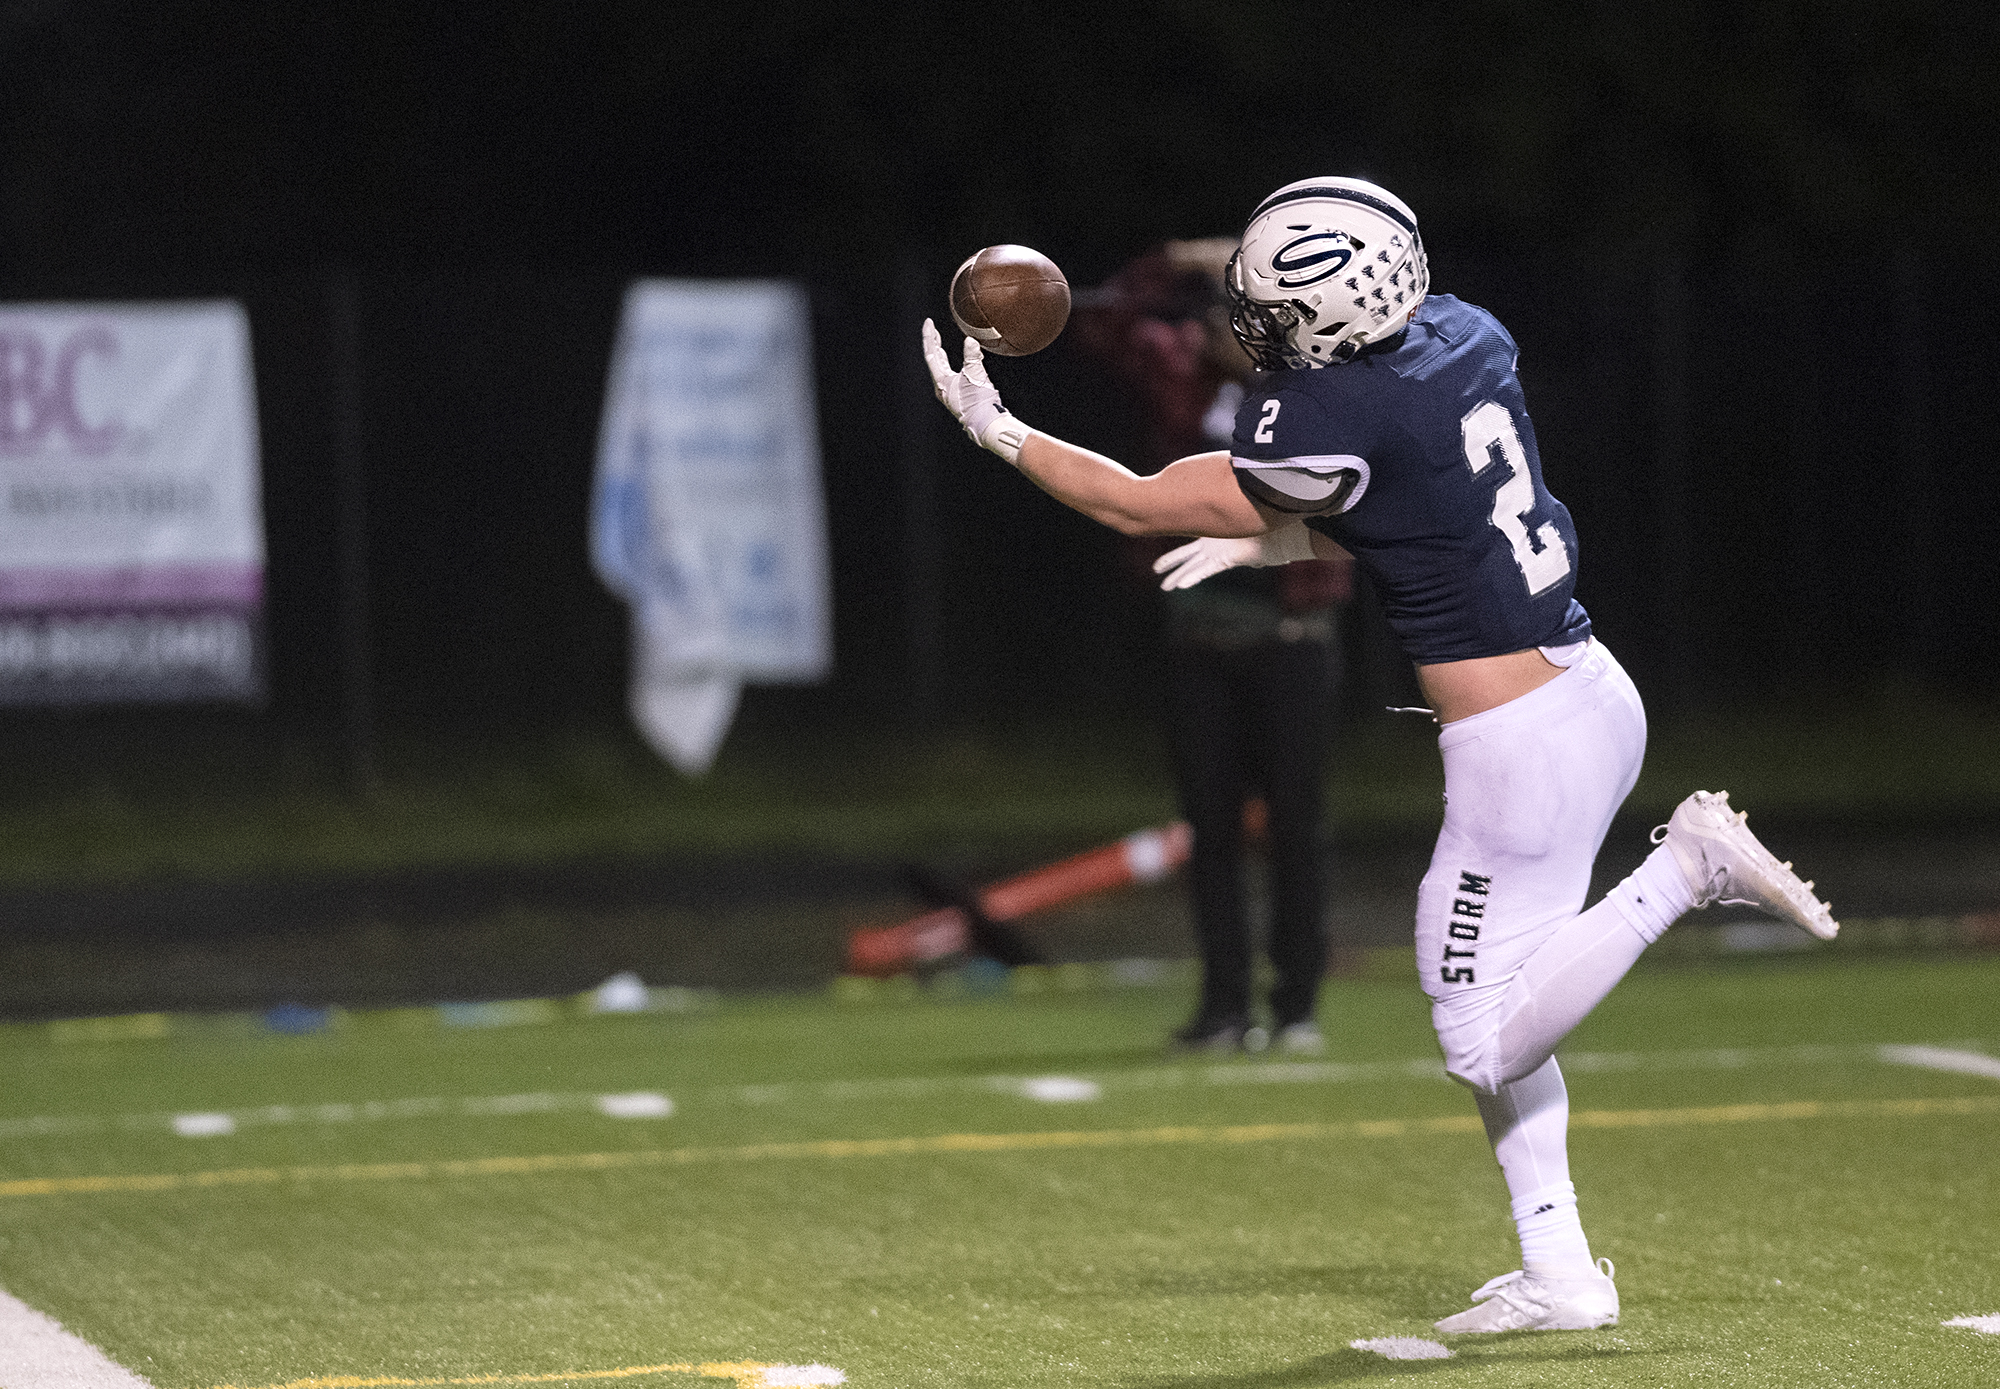 Skyview's Rhett Sarvela hauls in a 30-yard touchdown pass one-handed in a 4A/3A Greater St. Helens League game on Thursday, March 18, 2021, at Kiggins Bowl. Skyview won 49-7.